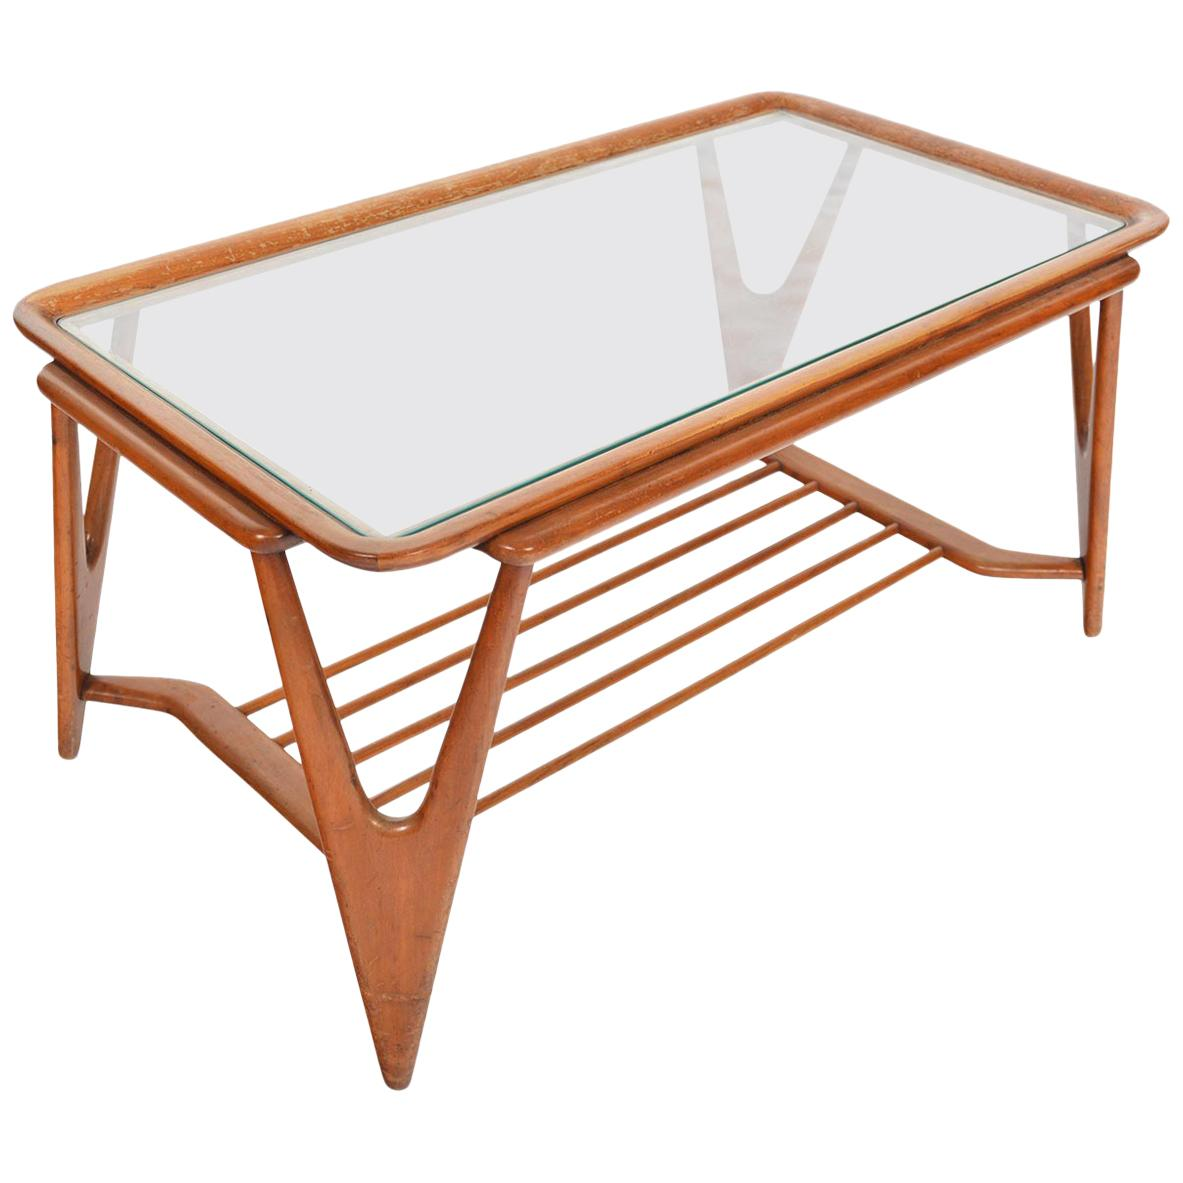 Italian Modern Coffee Table by Cesare Lacca for Cassina